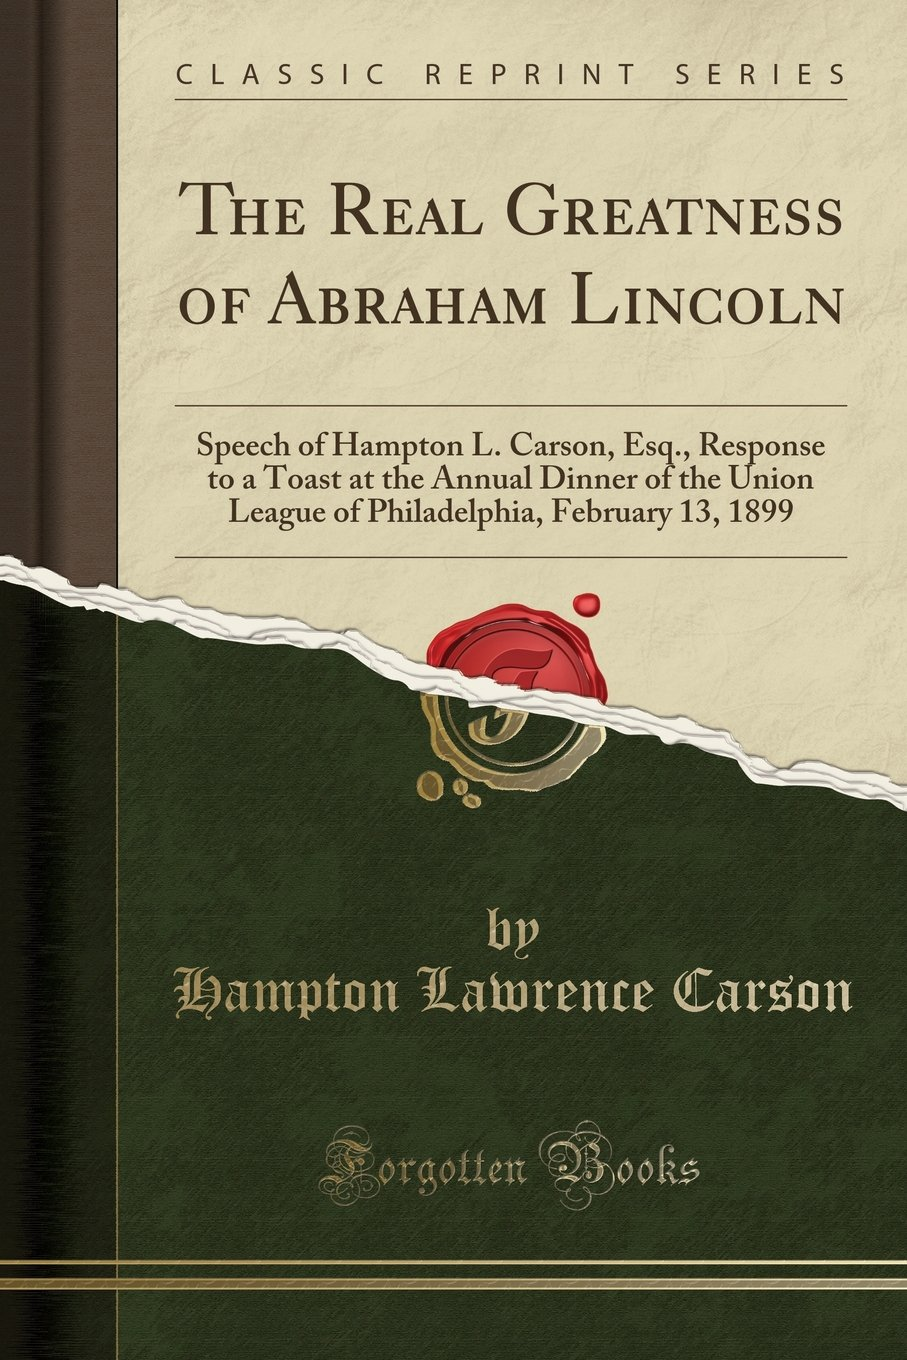 Download The Real Greatness of Abraham Lincoln: Speech of Hampton L. Carson, Esq., Response to a Toast at the Annual Dinner of the Union League of Philadelphia, February 13, 1899 (Classic Reprint) PDF